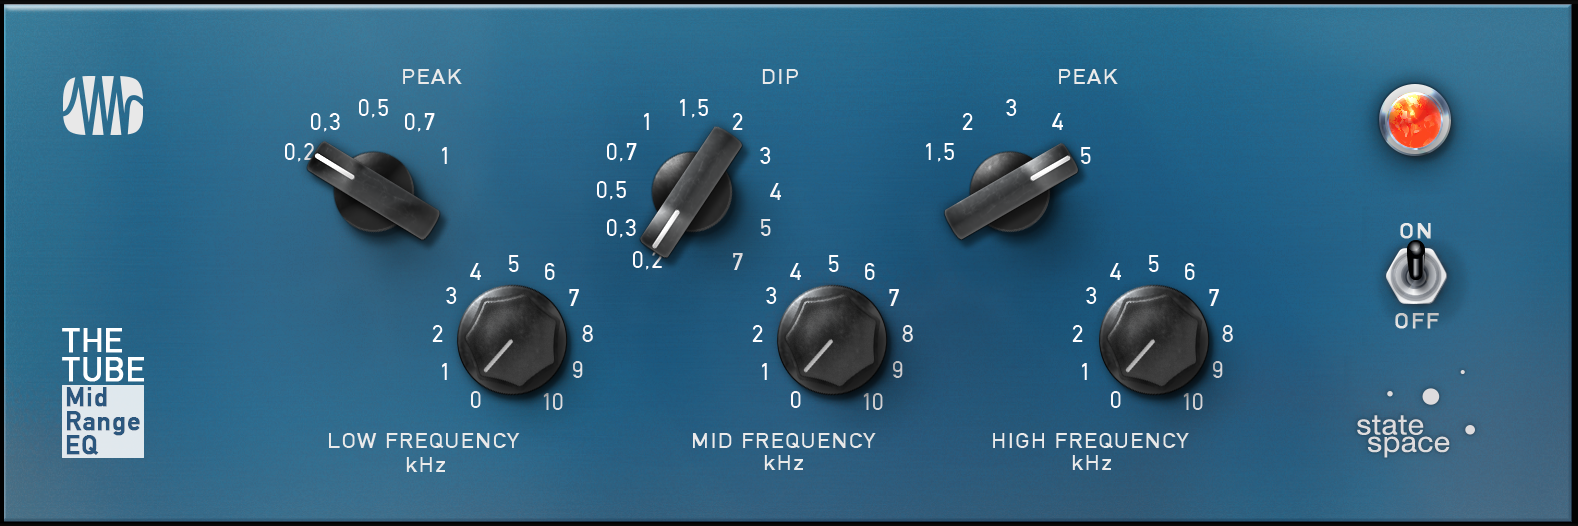 PreSonus The Tube Midrange EQ Fat Channel Plugin [Online Code] - Plug Eq Vst In